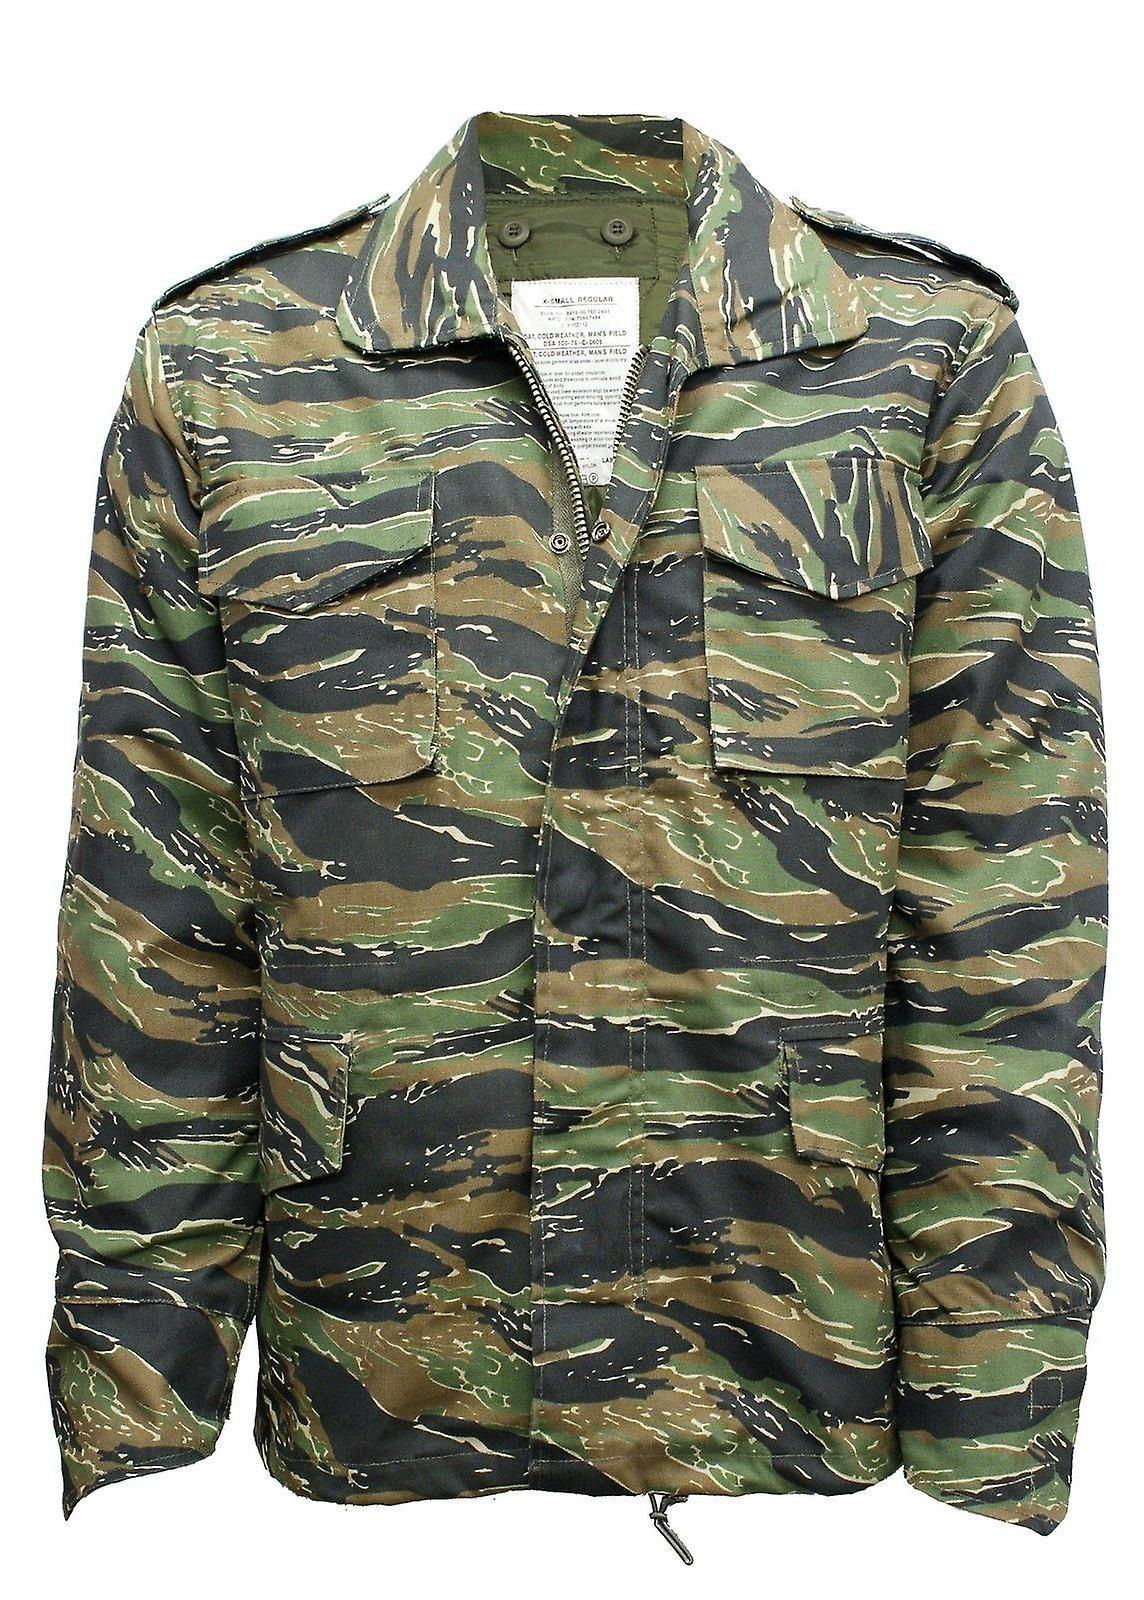 bbf8525f16c34 Vintage M65 Jacket Us Army Combat + Quilted Liner | Fruugo